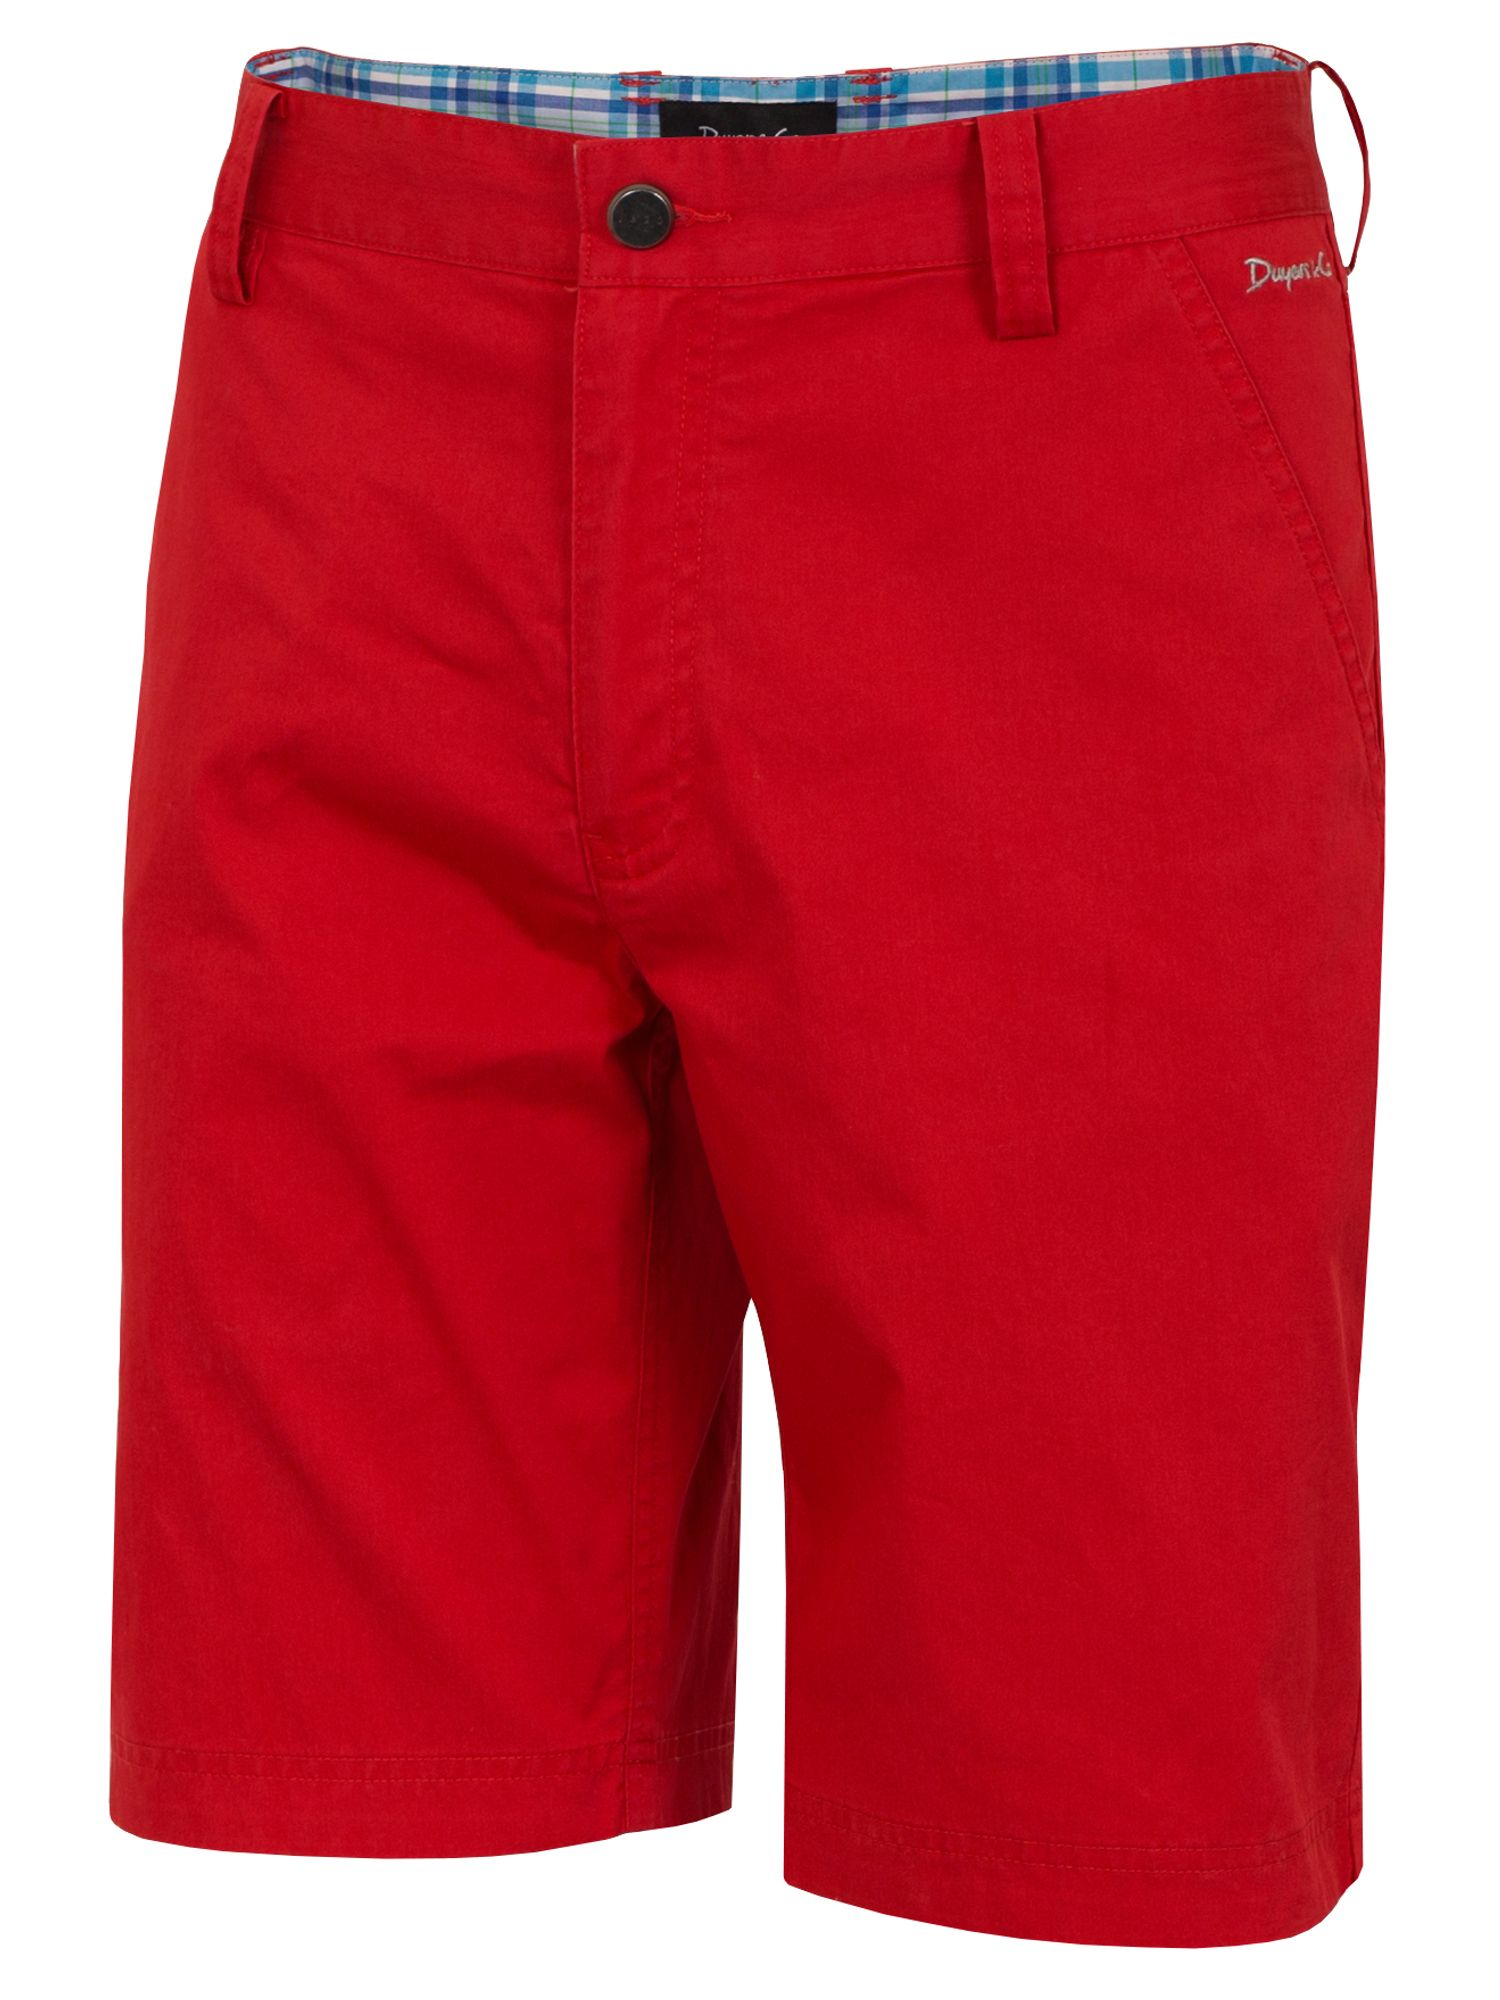 Dwyers and Co Men's Dwyers and Co Titanium Chino Shorts, Red